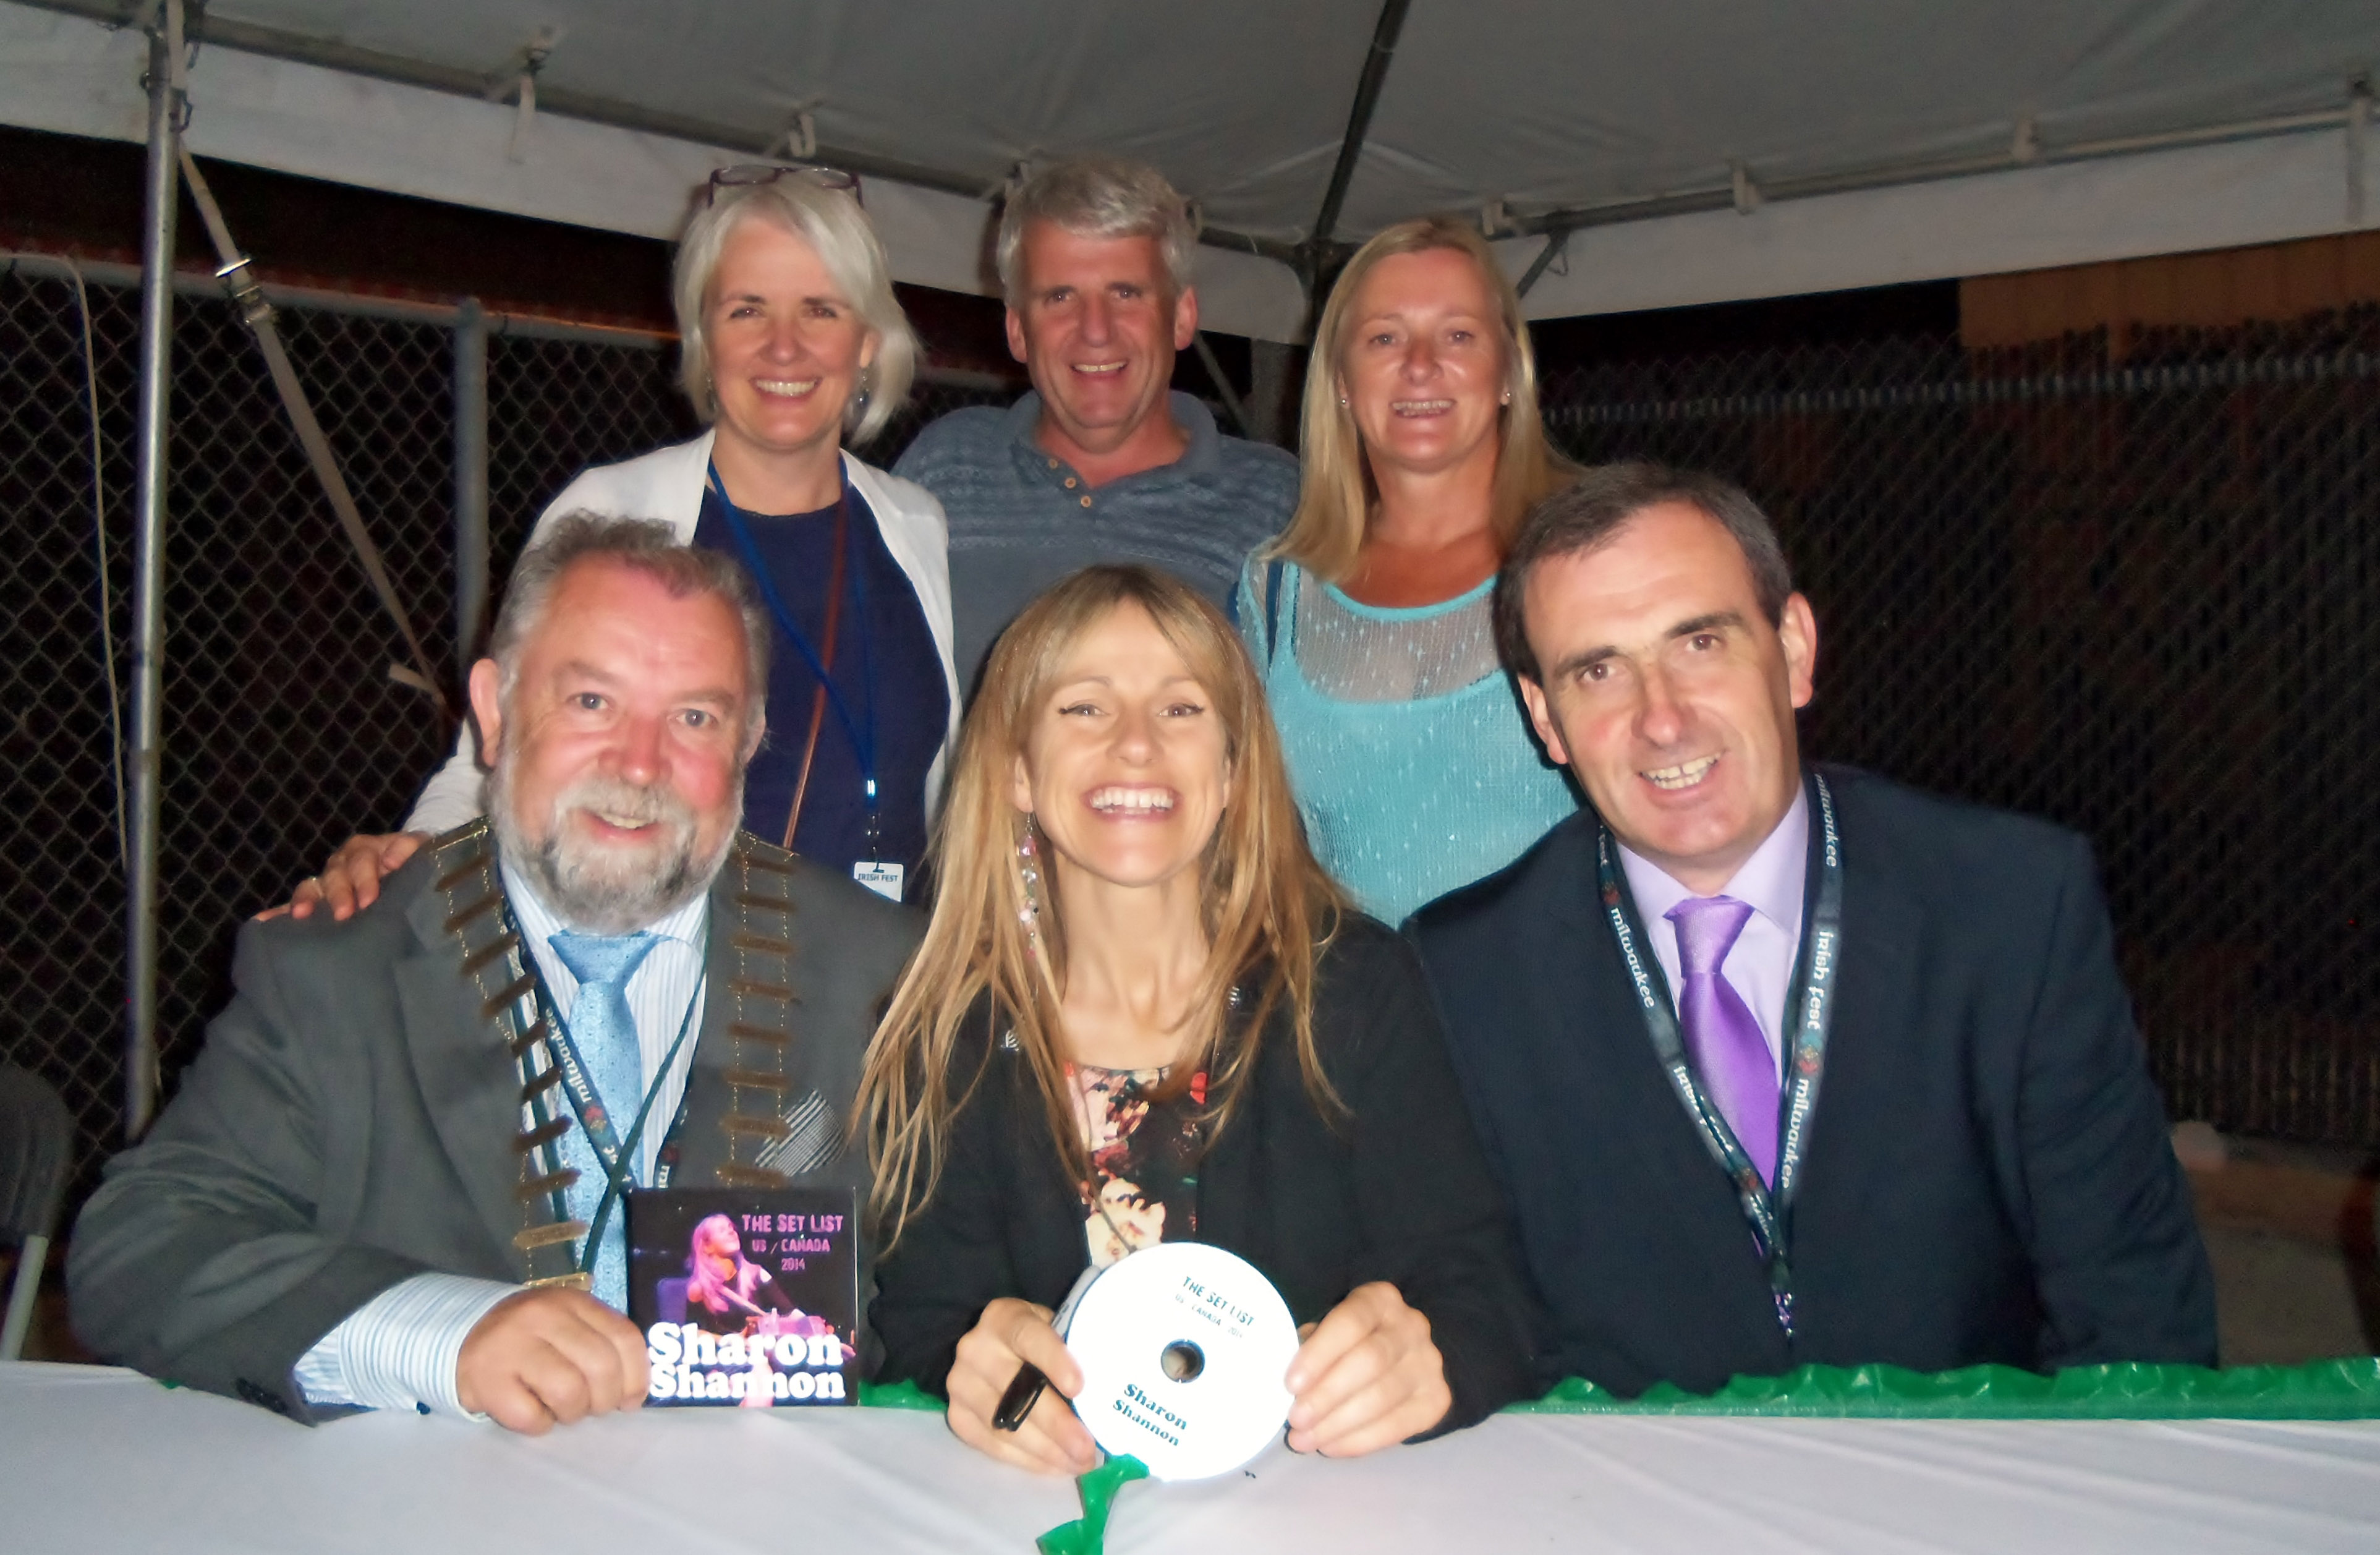 Clare representatives met with Ruan musician Sharon Shannon after one of her performances at Milwaukee Irish Fest on Thursday night. Pictured back row (l to r) Carol Gleeson, Burren Geopark, Jackie and Niamh Cronin (Glynns Coaches) front row (l to r) Cllr John Crowe, Cathaoirleach Clare County Council, Sharon Shannon and Gerard Dollard, Director of Services, Clare County Council